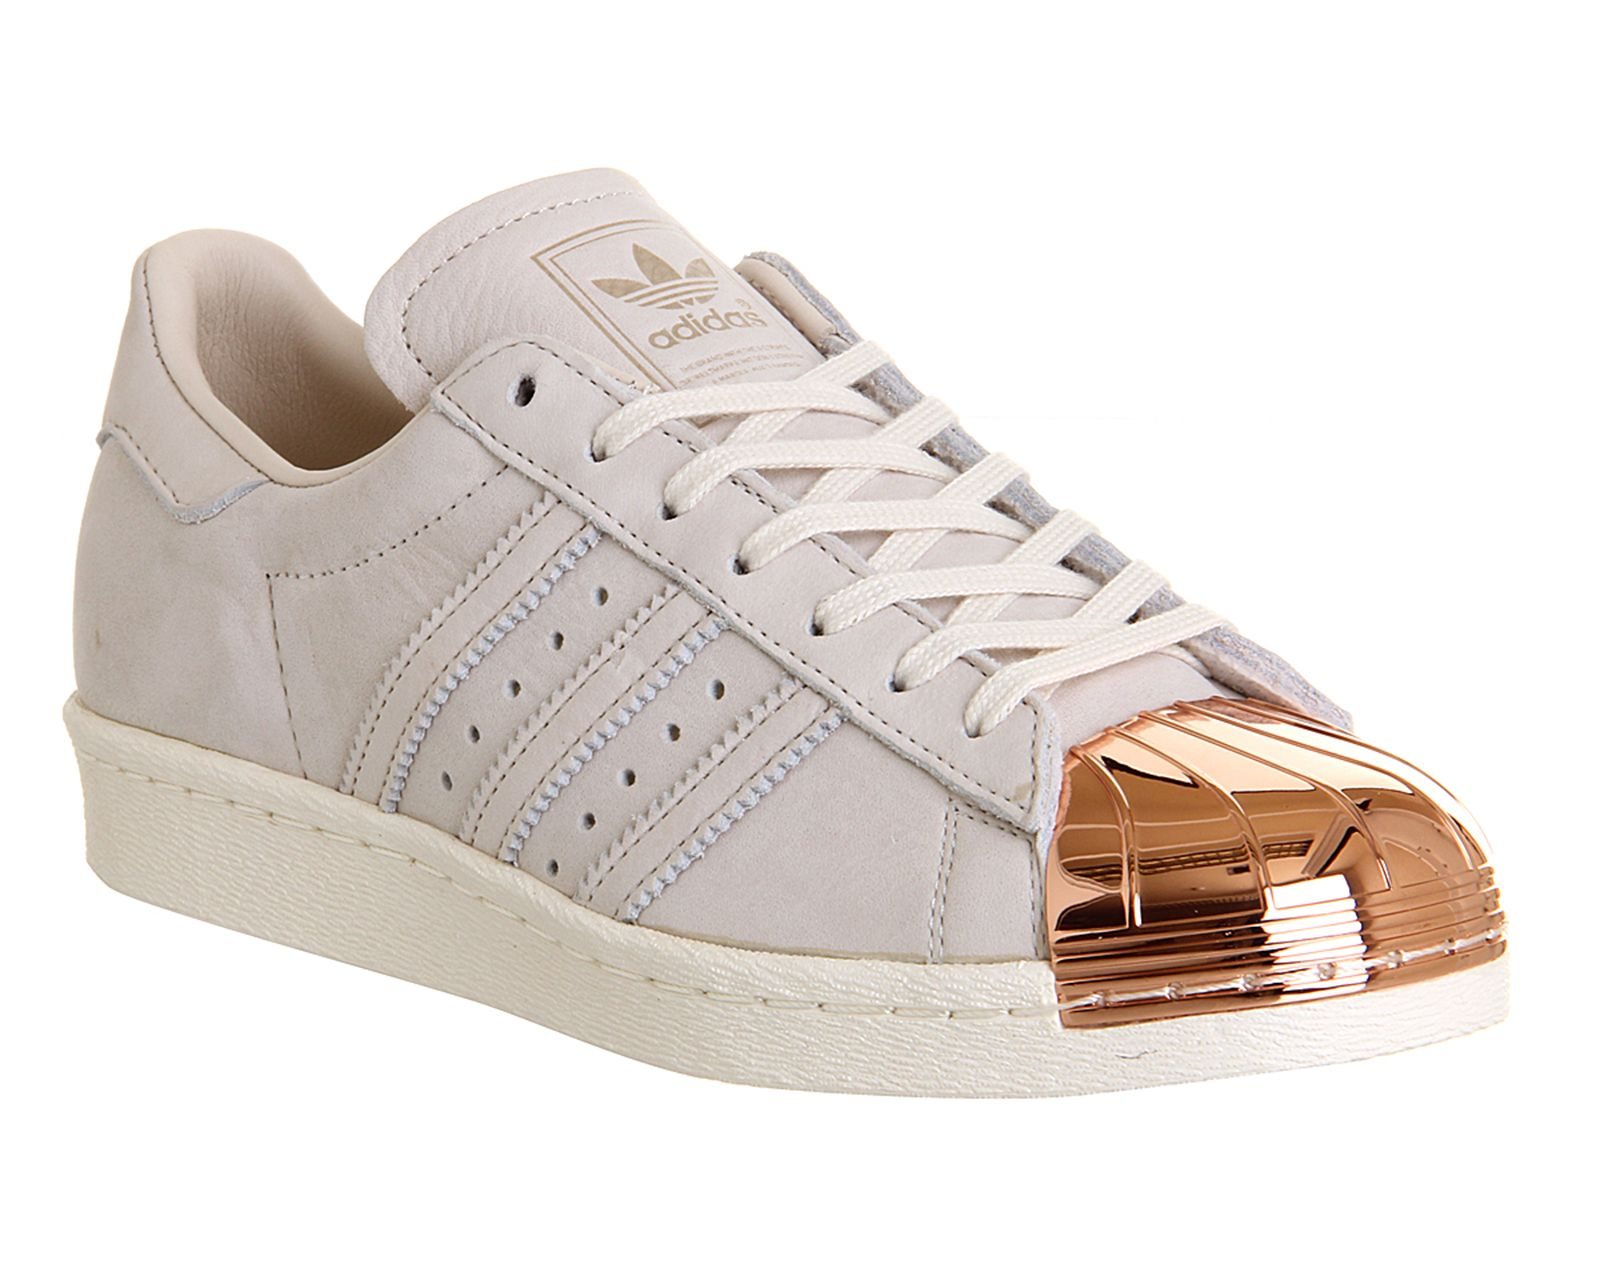 adidas superstar 80s rose gold metallic white leather unisex sports looks pinterest rose. Black Bedroom Furniture Sets. Home Design Ideas